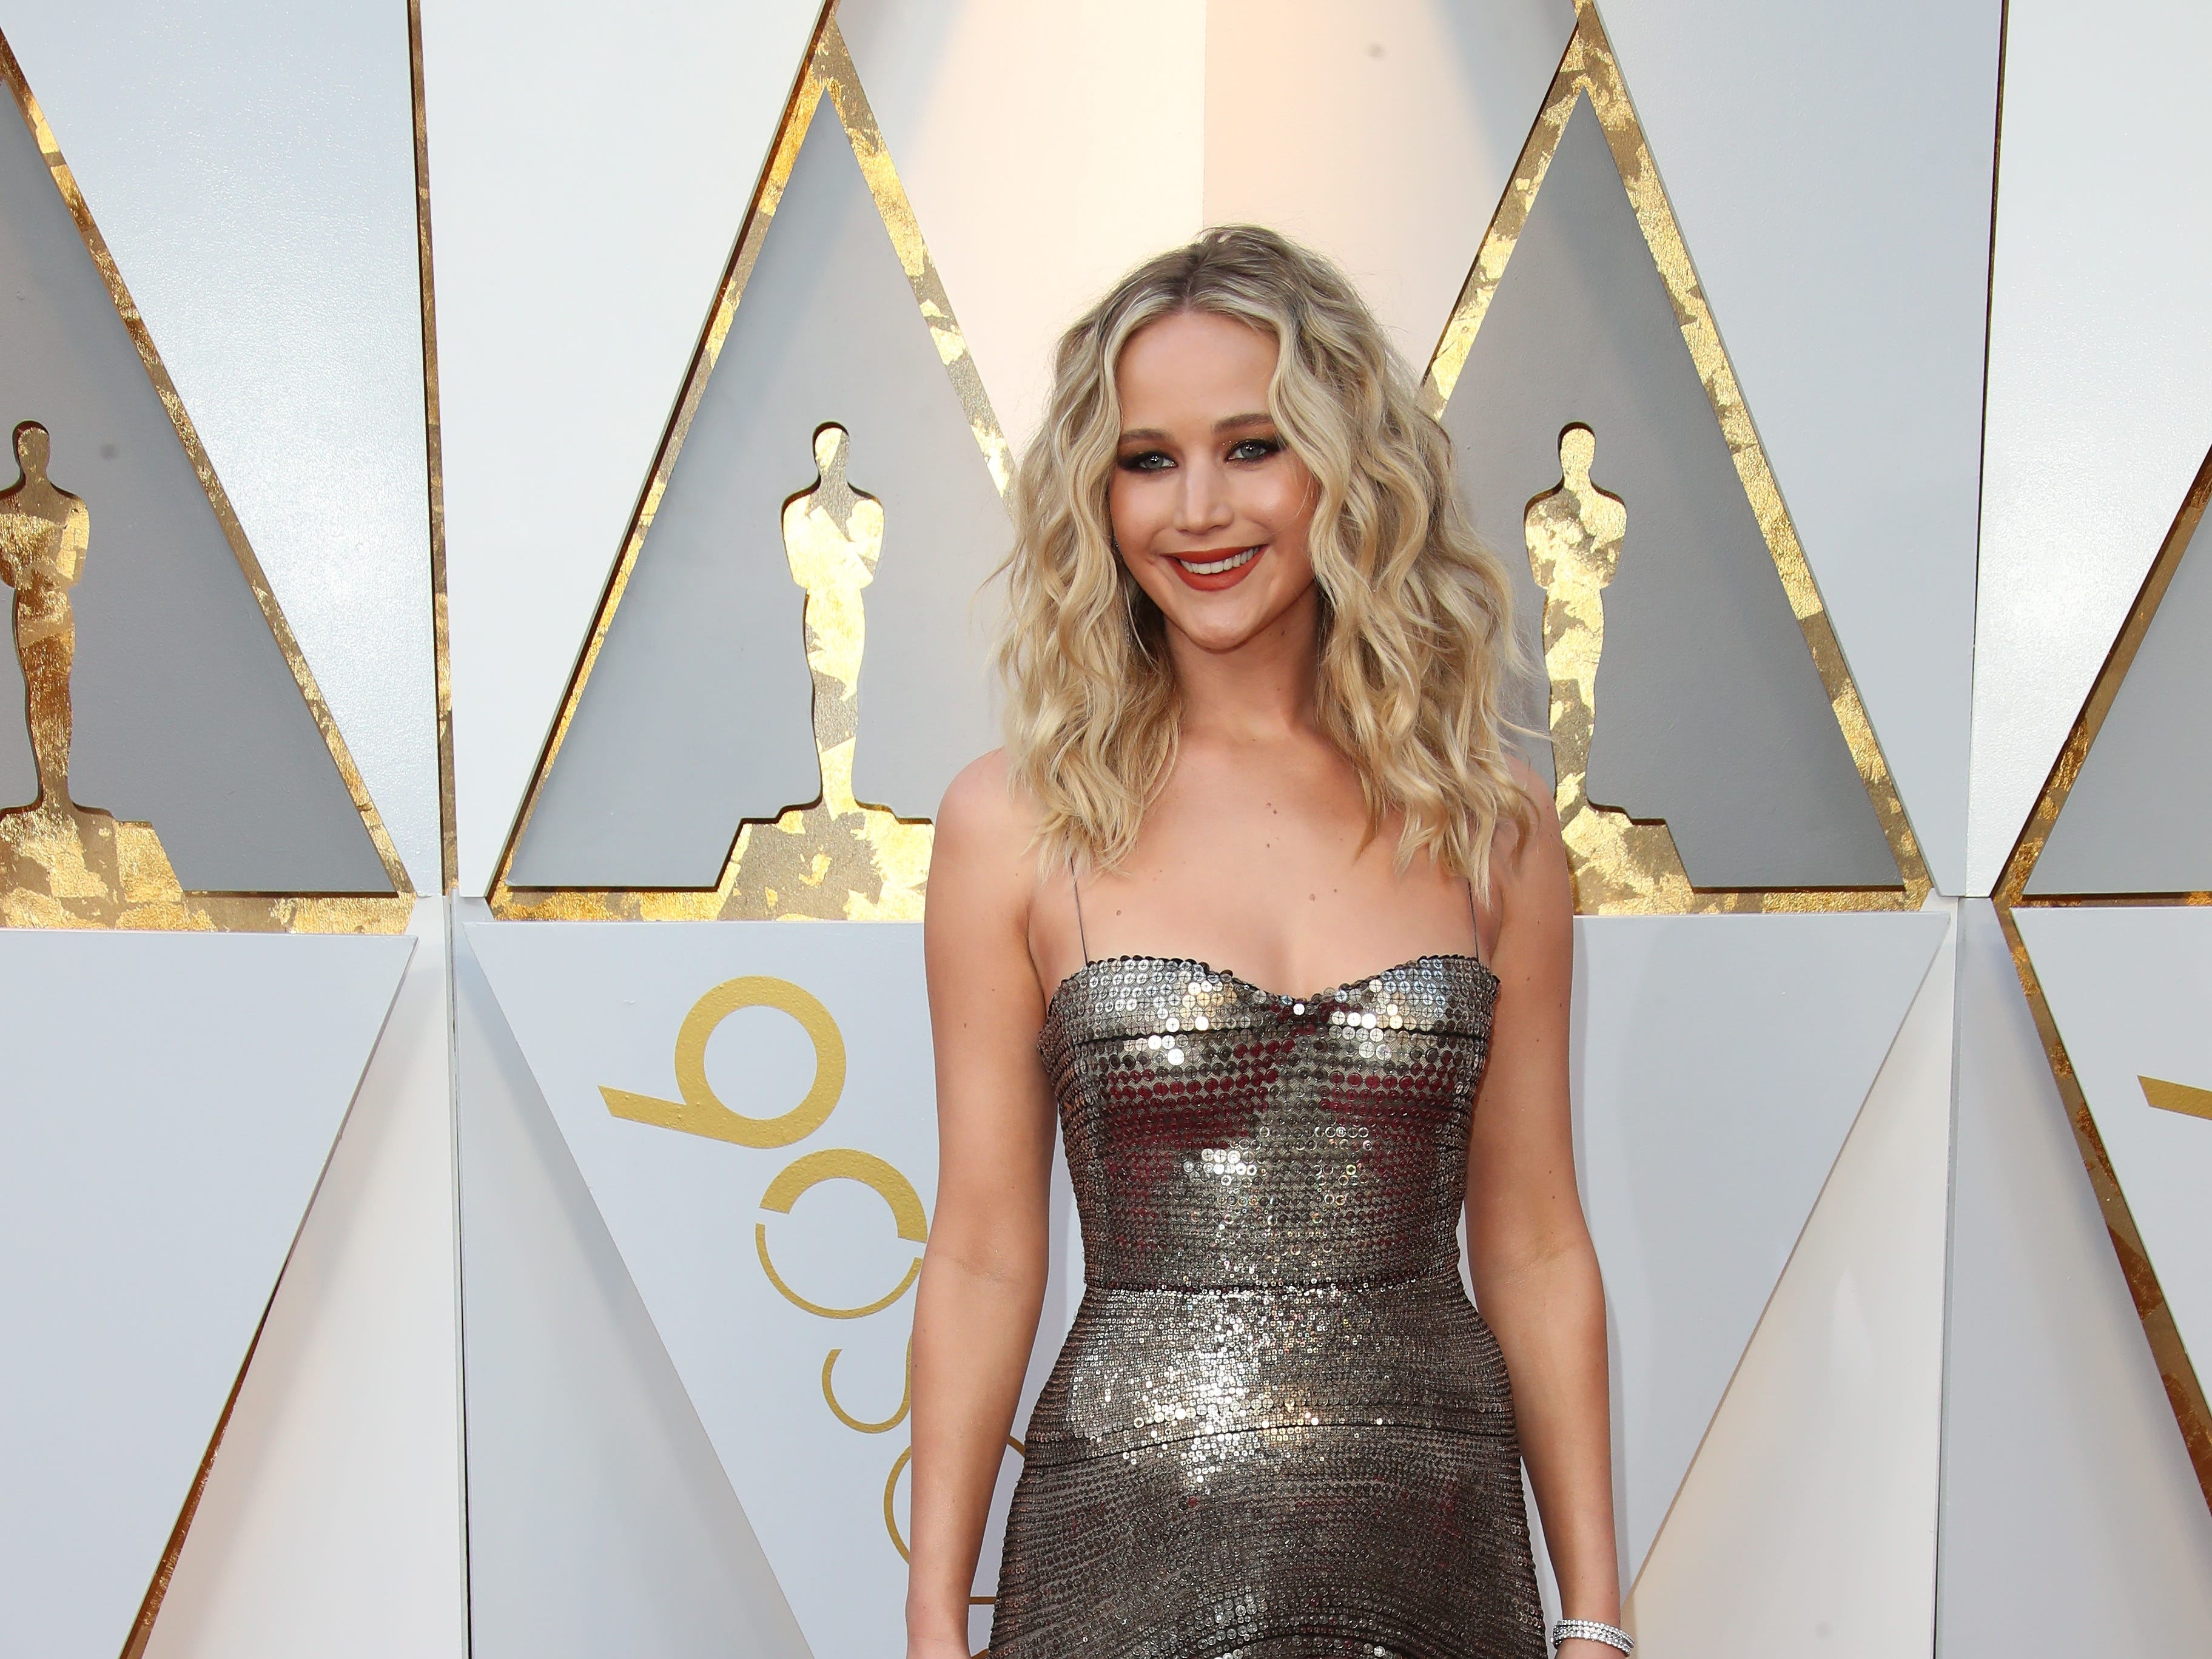 March 4, 2018; Hollywood, CA, USA; Jennifer Lawrence arrives at the 90th Academy Awards at Dolby Theatre. Mandatory Credit: Dan MacMedan-USA TODAY NETWORK (Via OlyDrop)